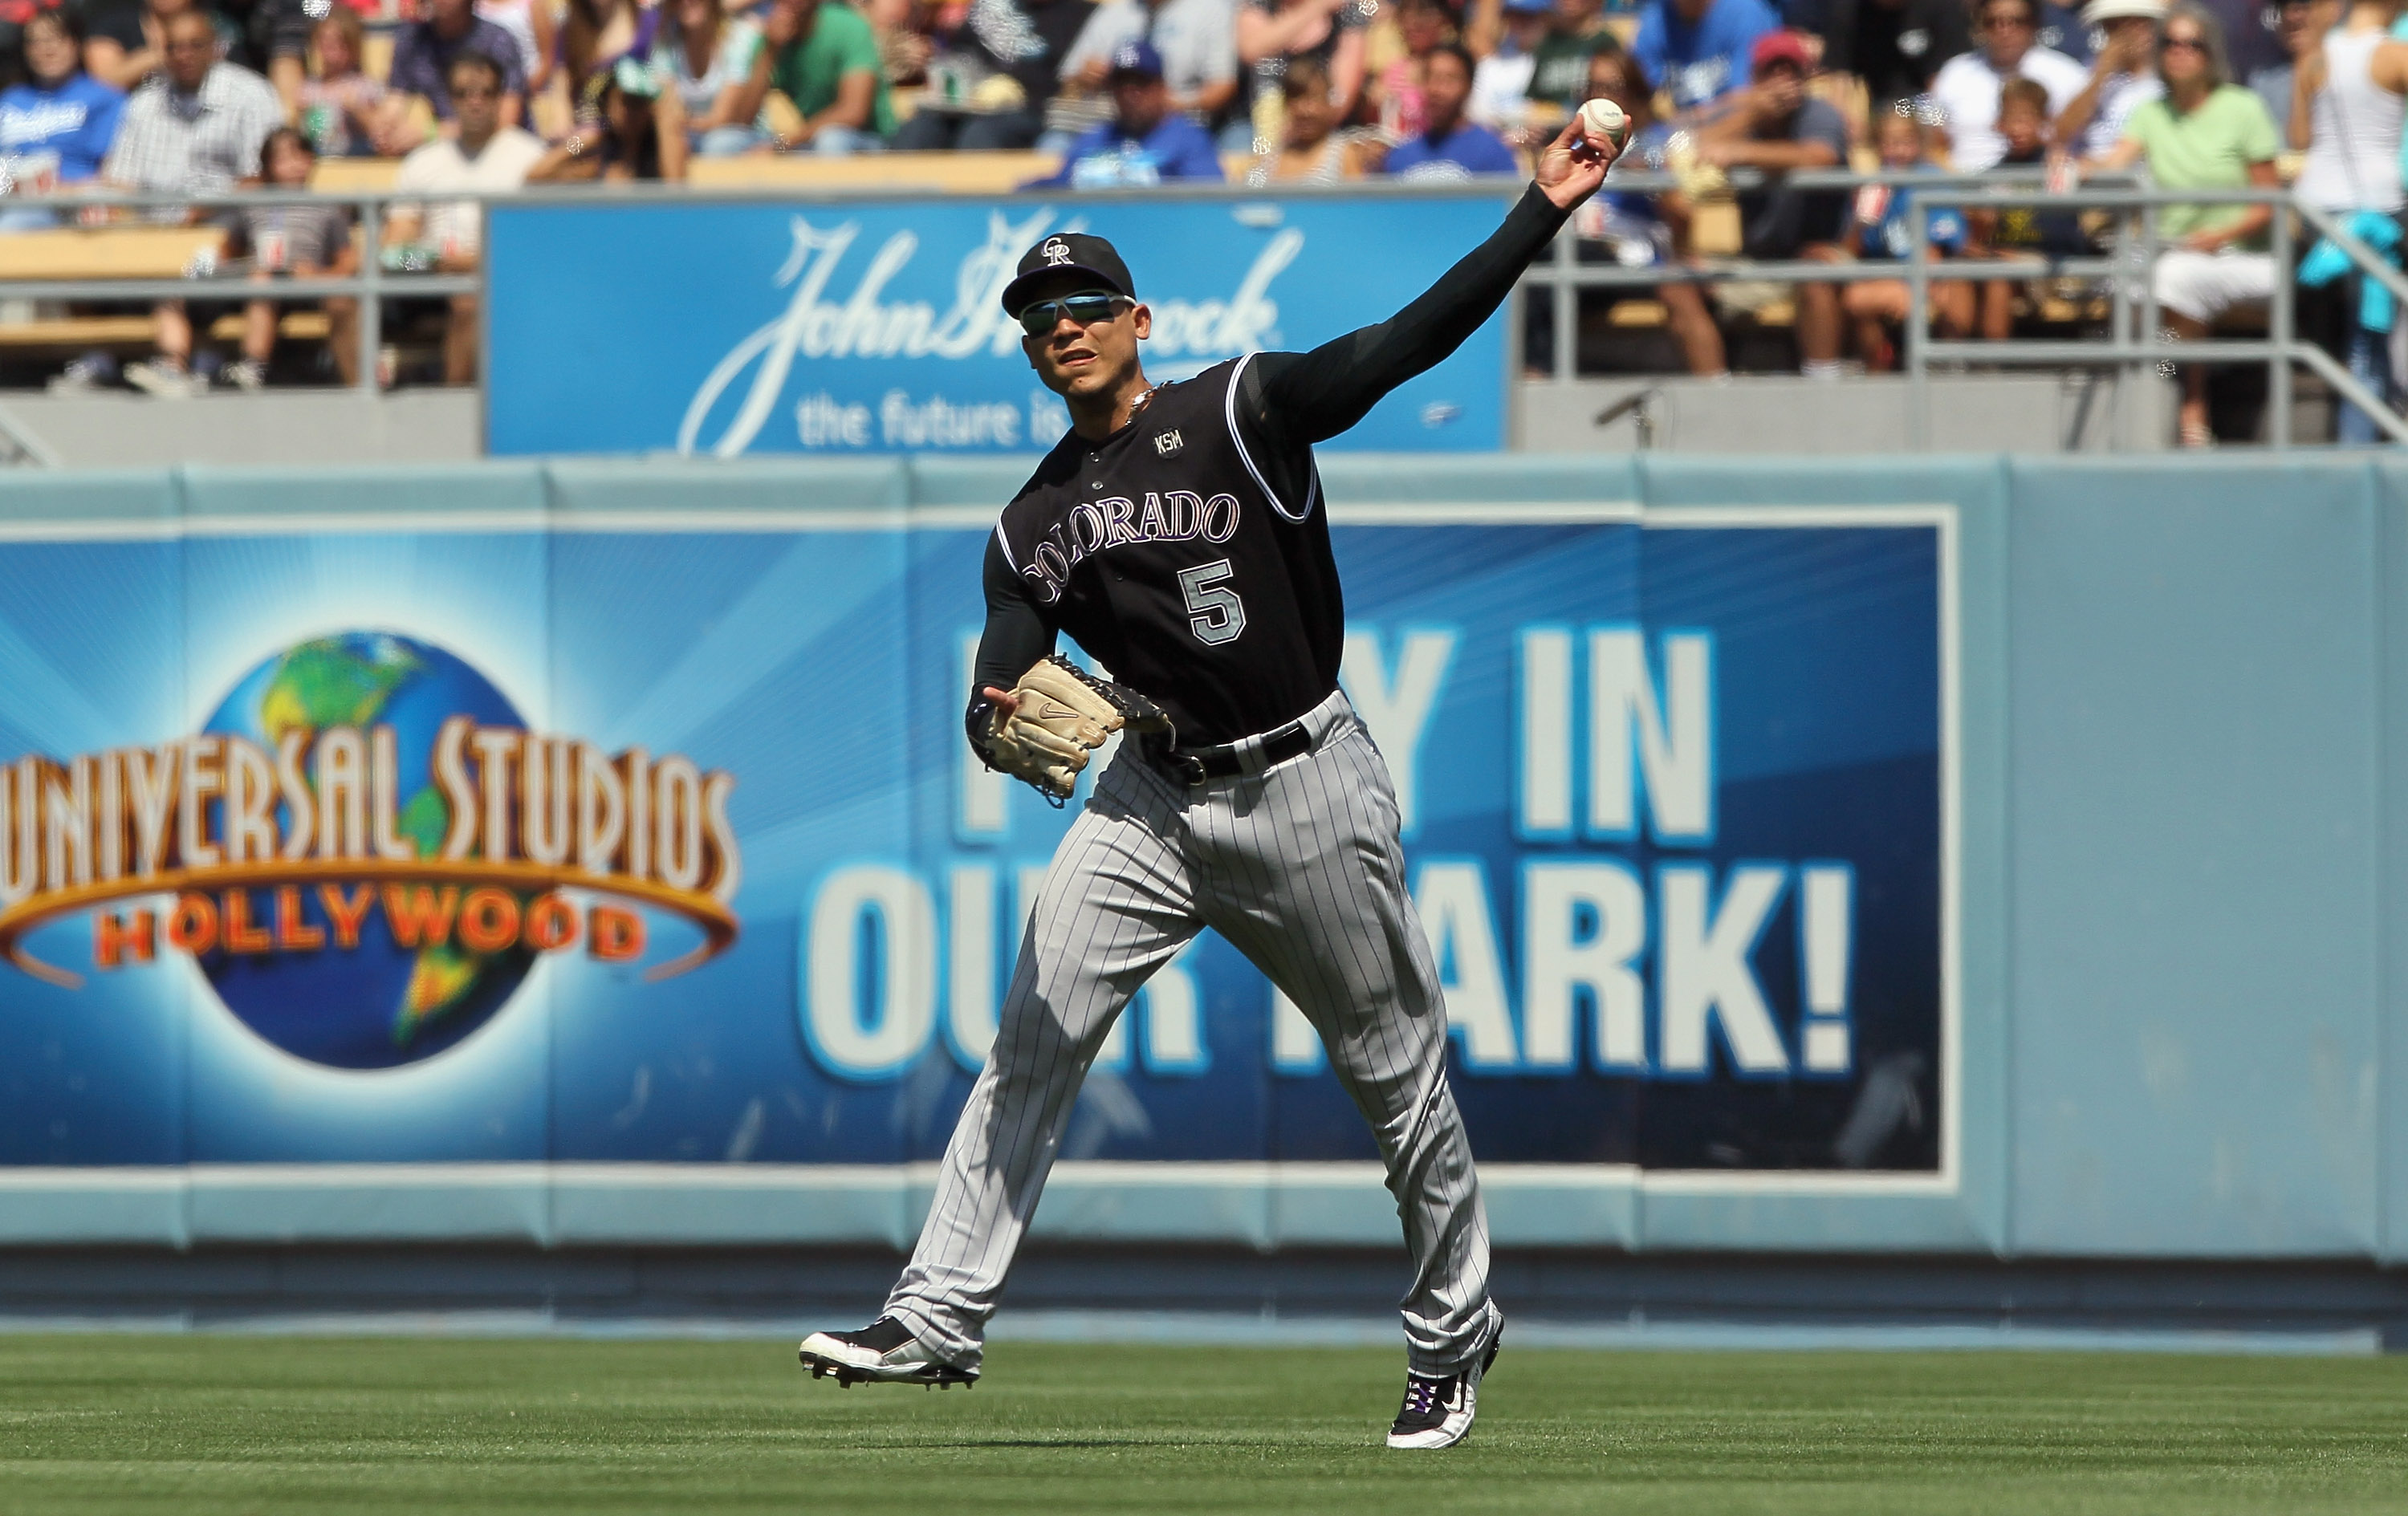 LOS ANGELES, CA - SEPTEMBER 18:  Carlos Gonzalez #5 of the Colorado Rockies plays against the Los Angeles Dodgers in the game at Dodger Stadium on September 18, 2010 in Los Angeles, California.  (Photo by Jeff Gross/Getty Images)